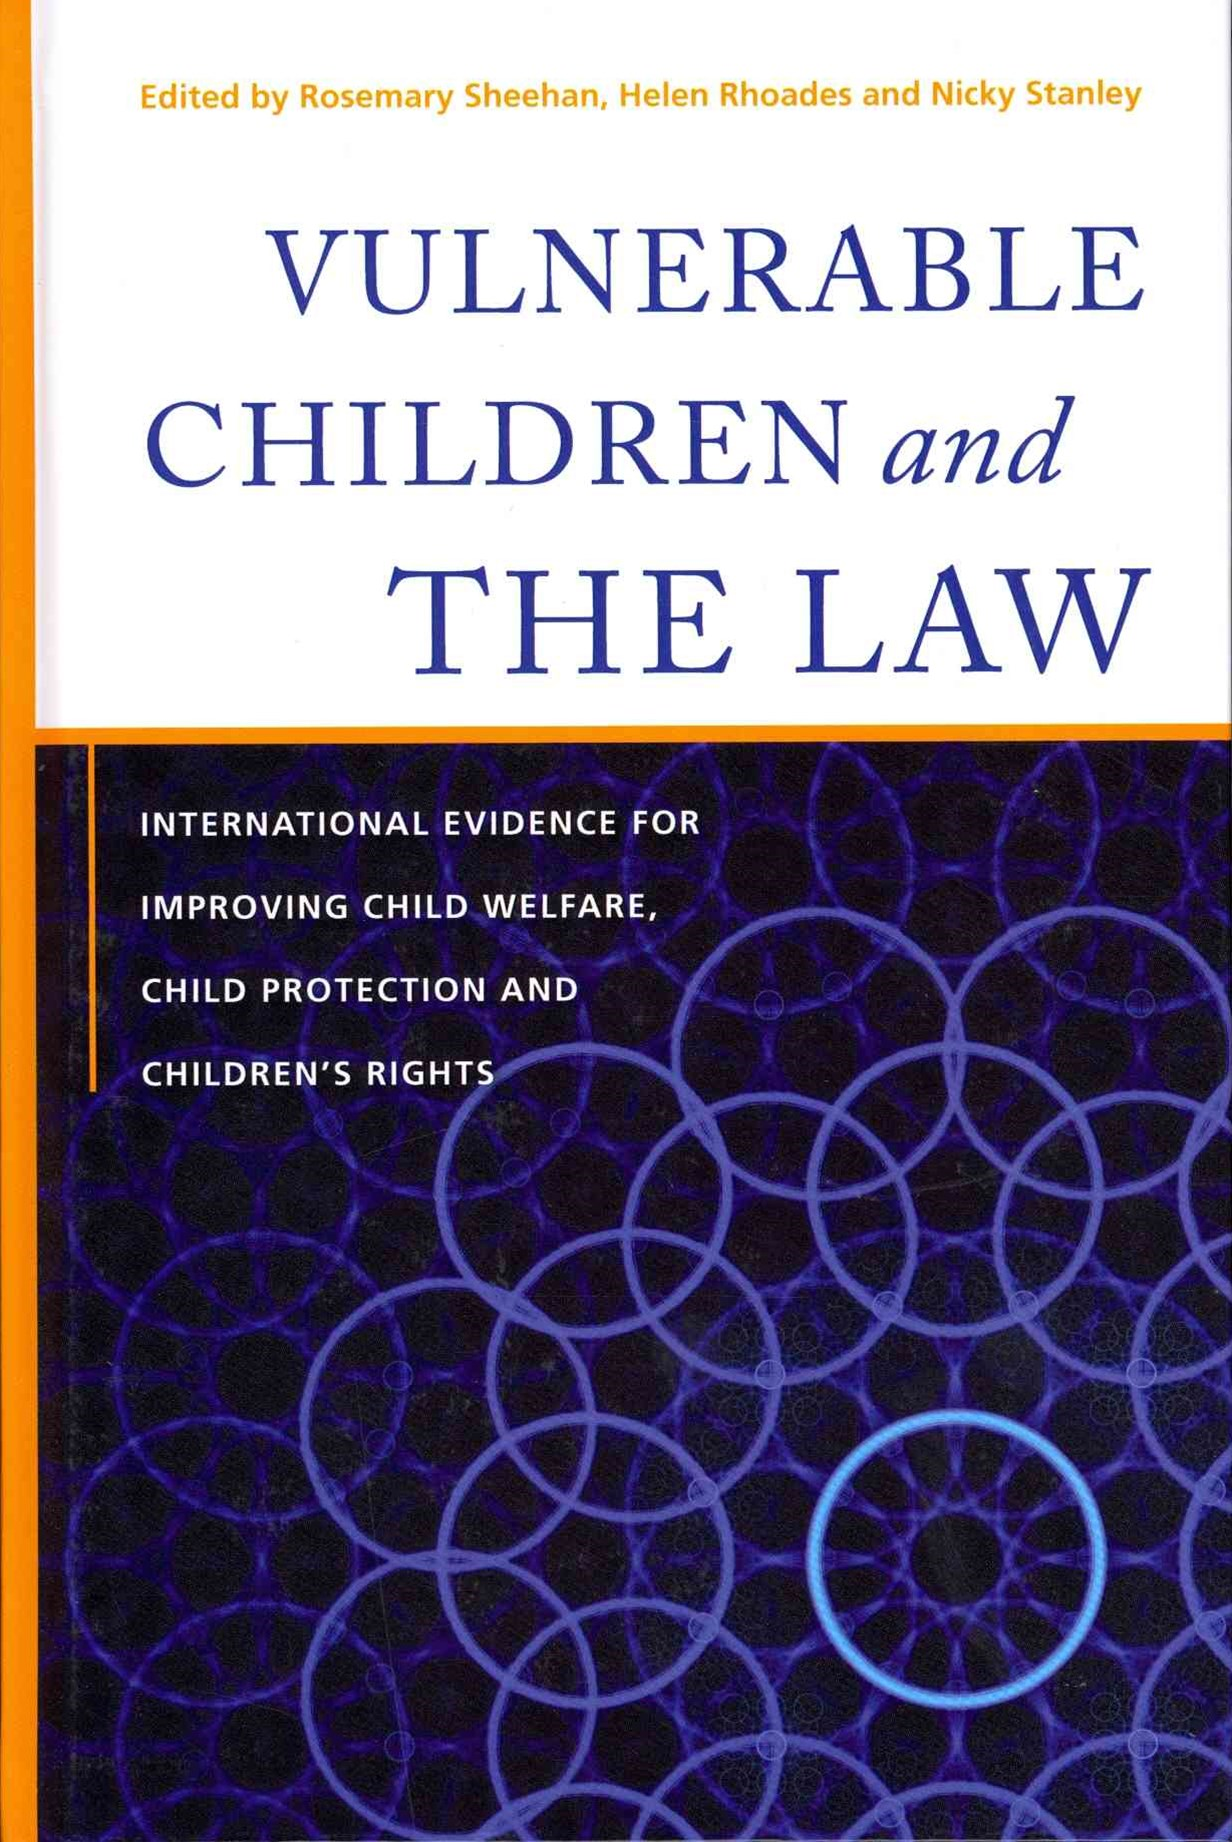 Vulnerable Children and the Law